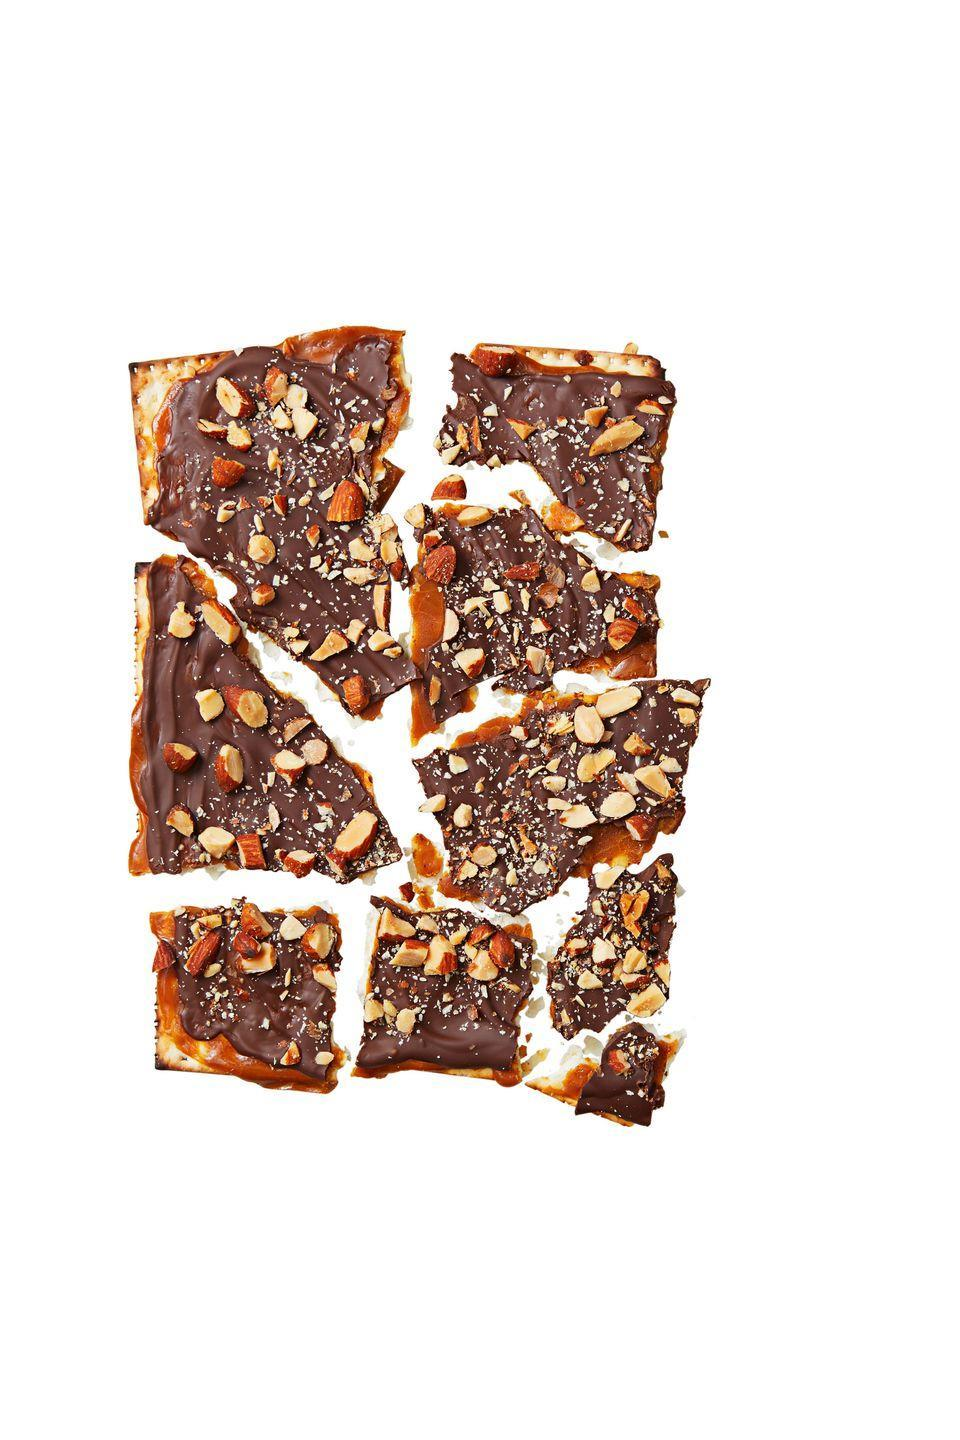 """<p>You'll be snacking on these sweet, crunchy treats all week long.</p><p><em><a href=""""https://www.goodhousekeeping.com/food-recipes/a37546/choco-caramel-matzo-brittle-recipe/"""" rel=""""nofollow noopener"""" target=""""_blank"""" data-ylk=""""slk:Get the recipe for Choco-Caramel Matzo Brittle »"""" class=""""link rapid-noclick-resp"""">Get the recipe for Choco-Caramel Matzo Brittle »</a></em></p>"""